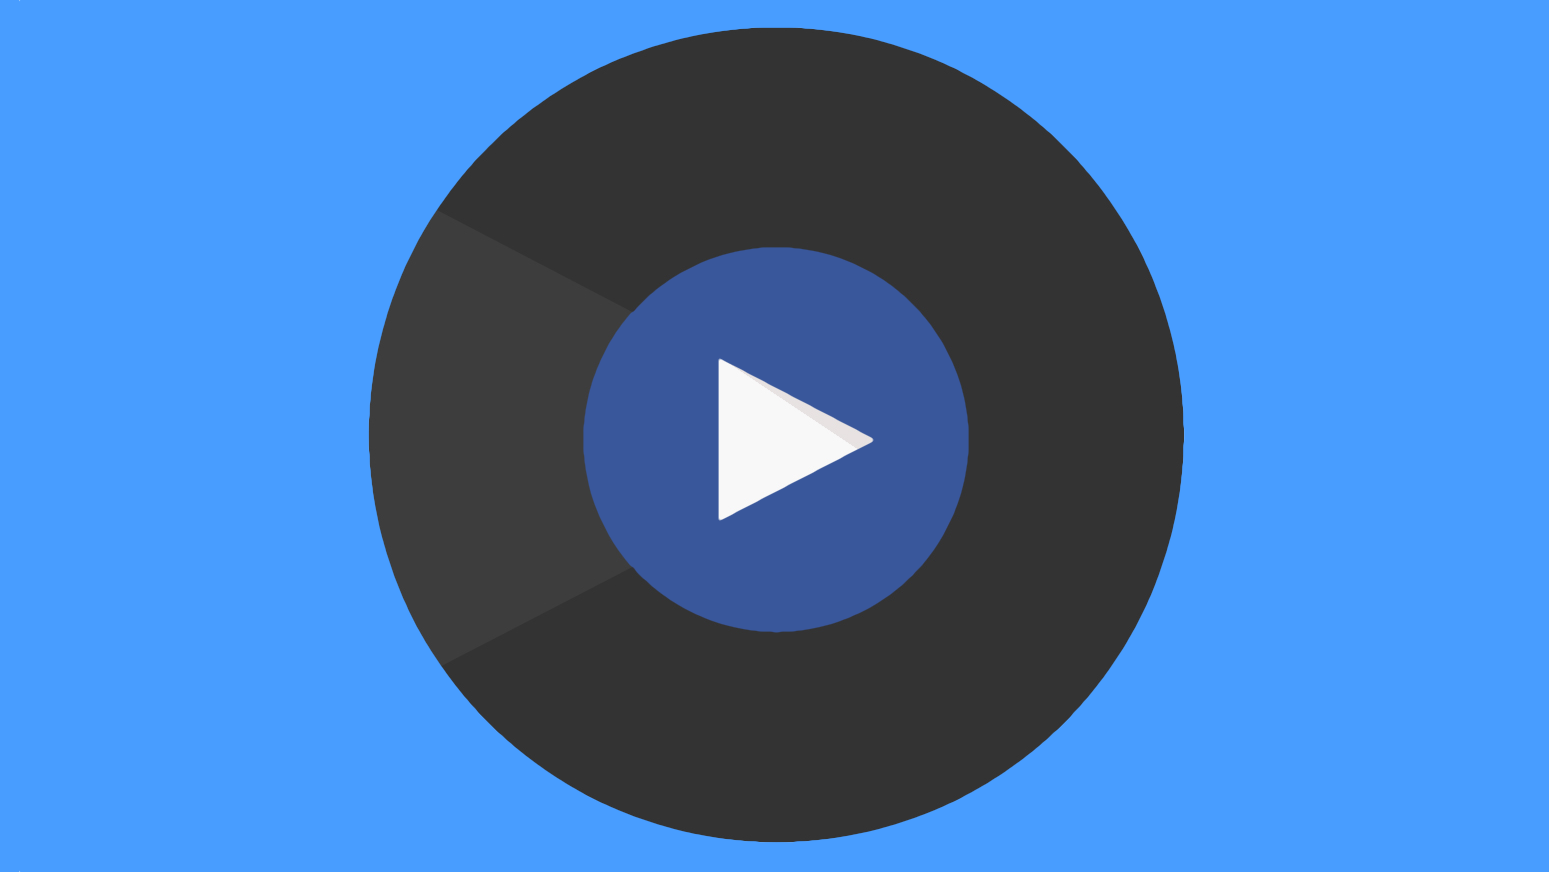 facebook youtube music 16x9